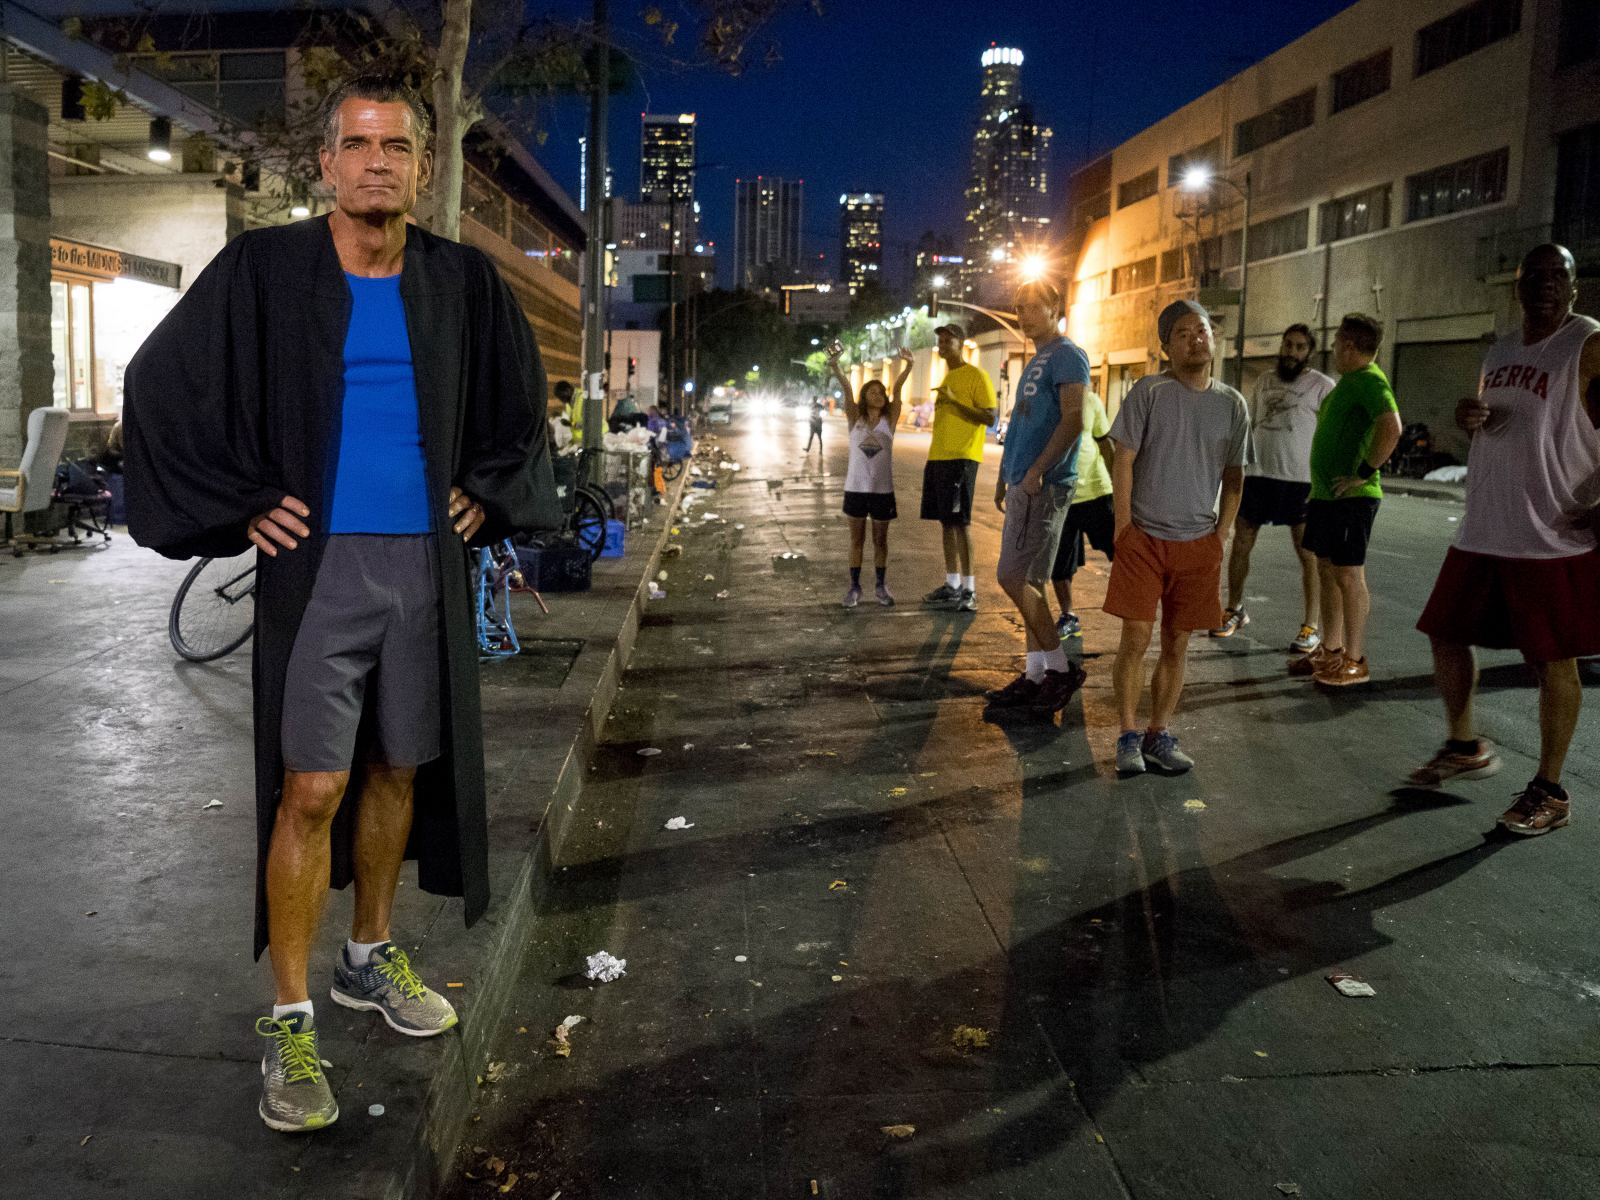 Main image for event titled SKID ROW MARATHON